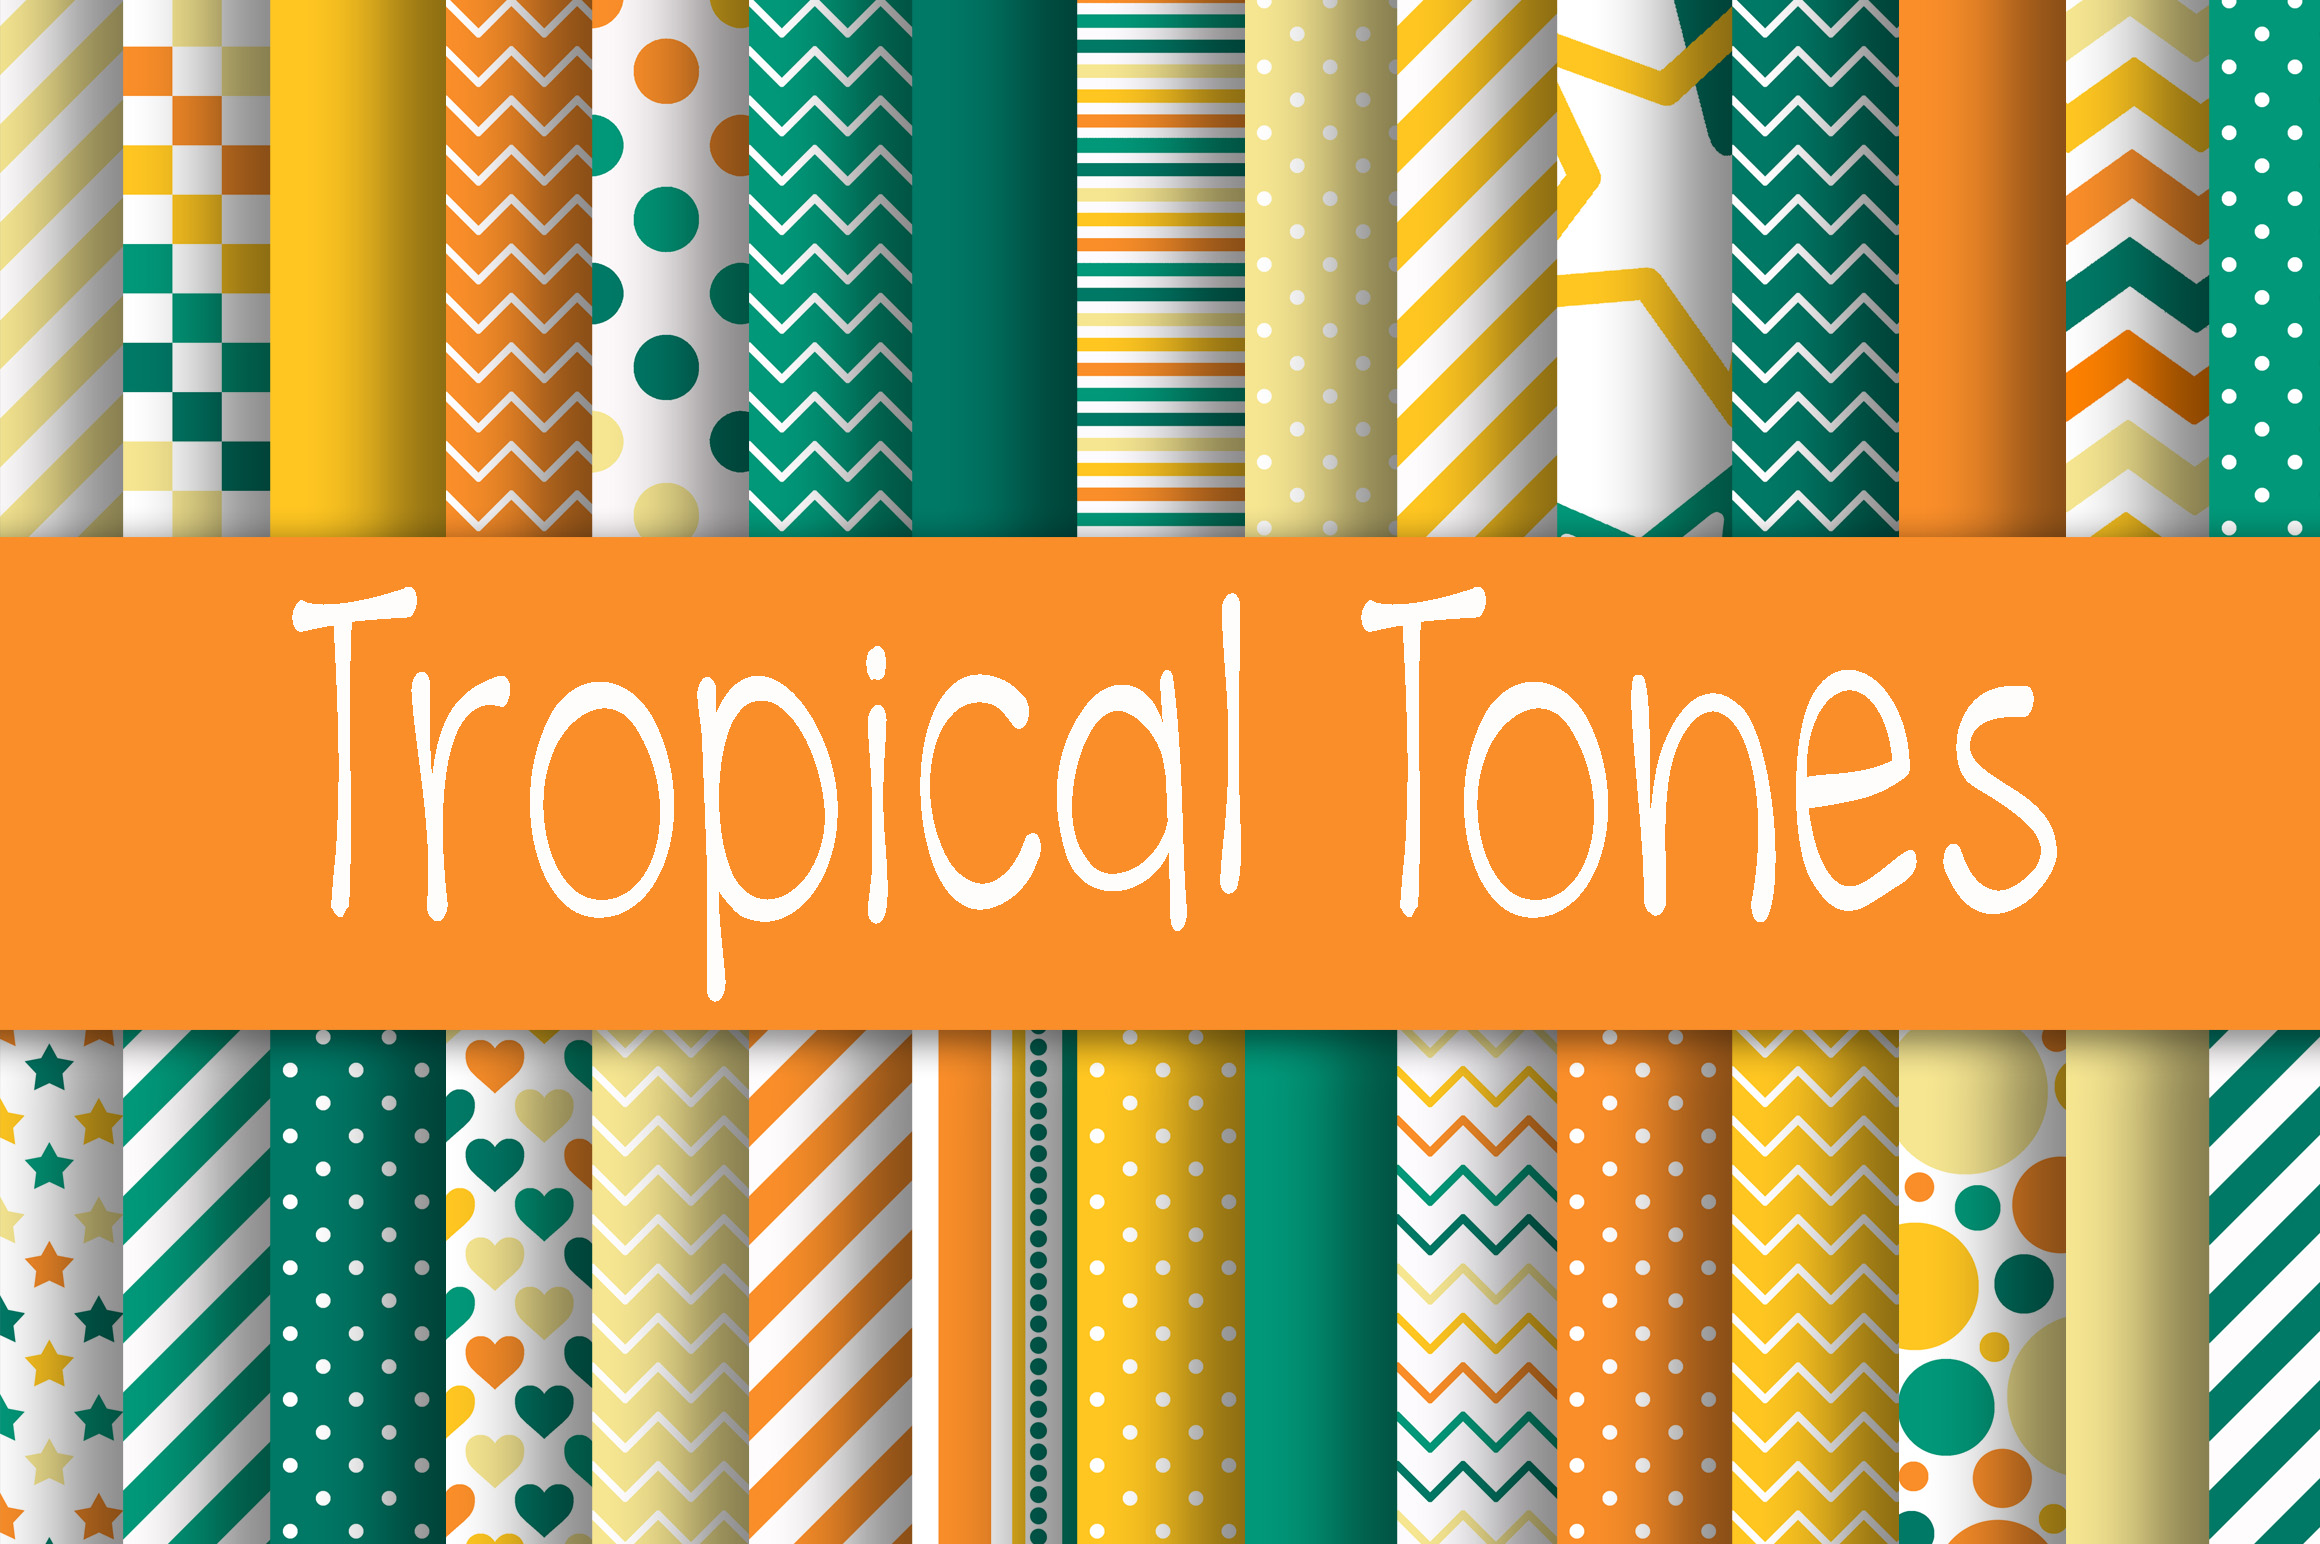 Tropical Tones Digital Paper Graphic Backgrounds By oldmarketdesigns